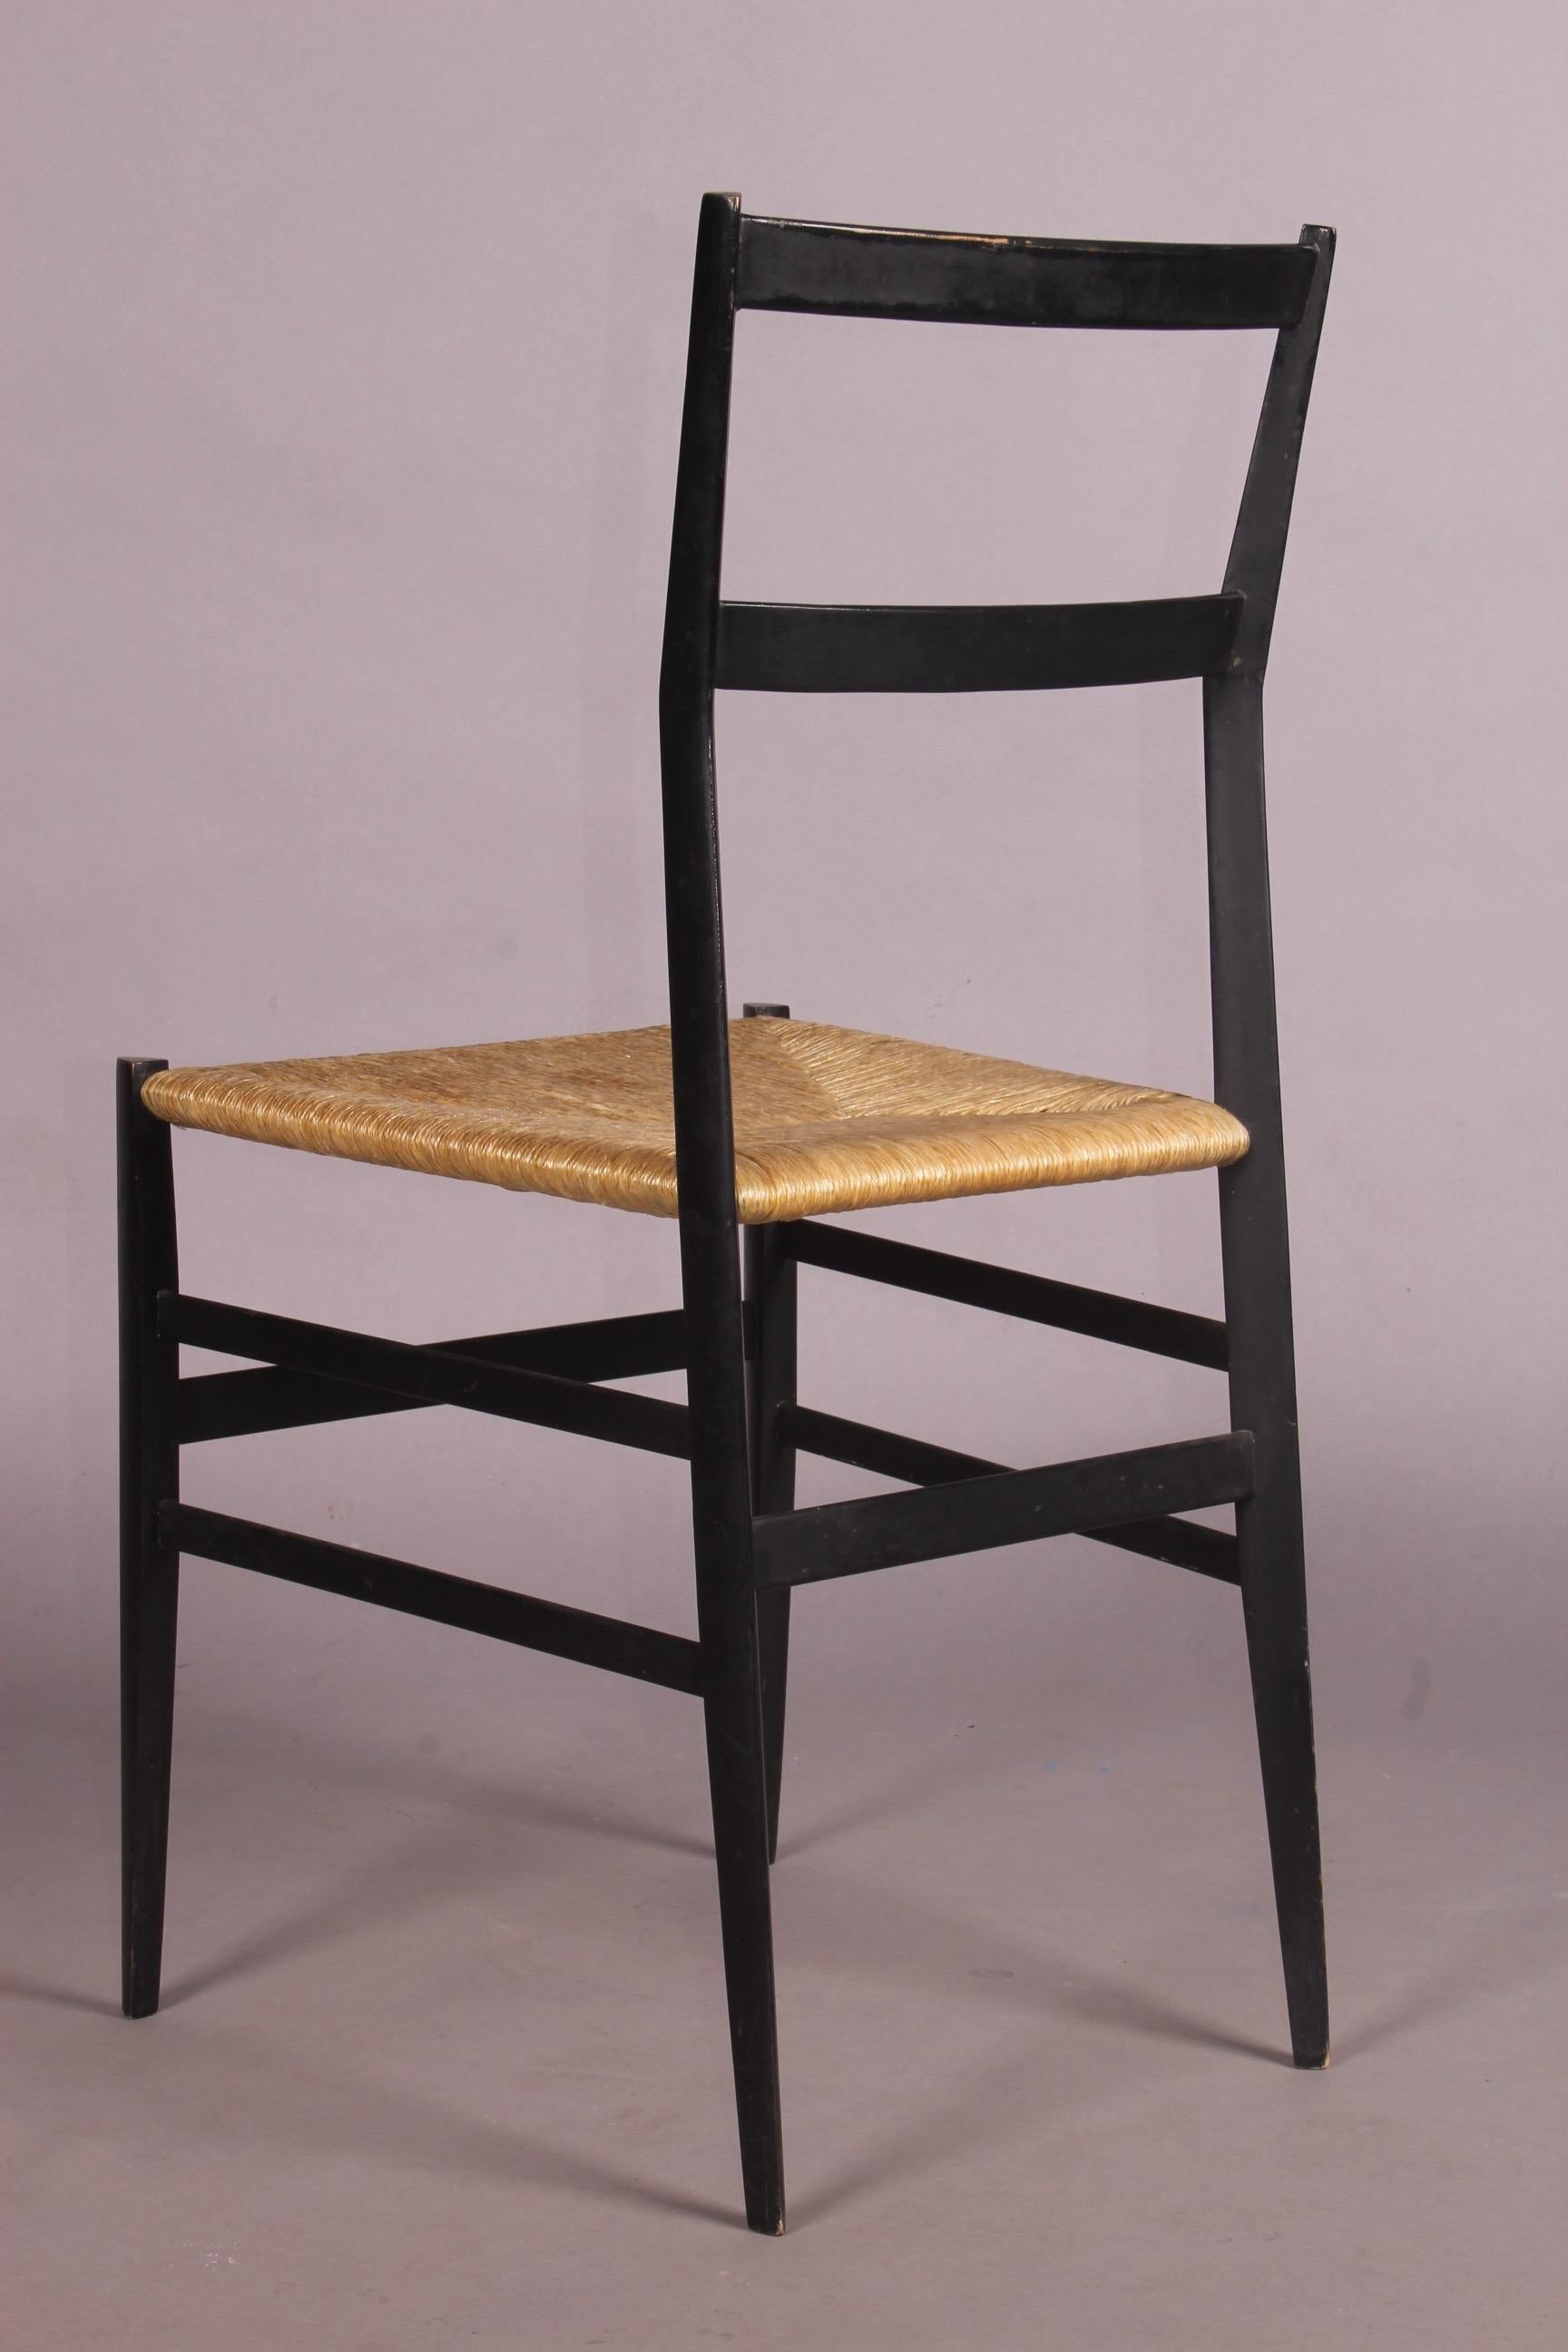 Superleggera Chair By Gio Ponti And Cassina, The Seat Is A Bit Stained.